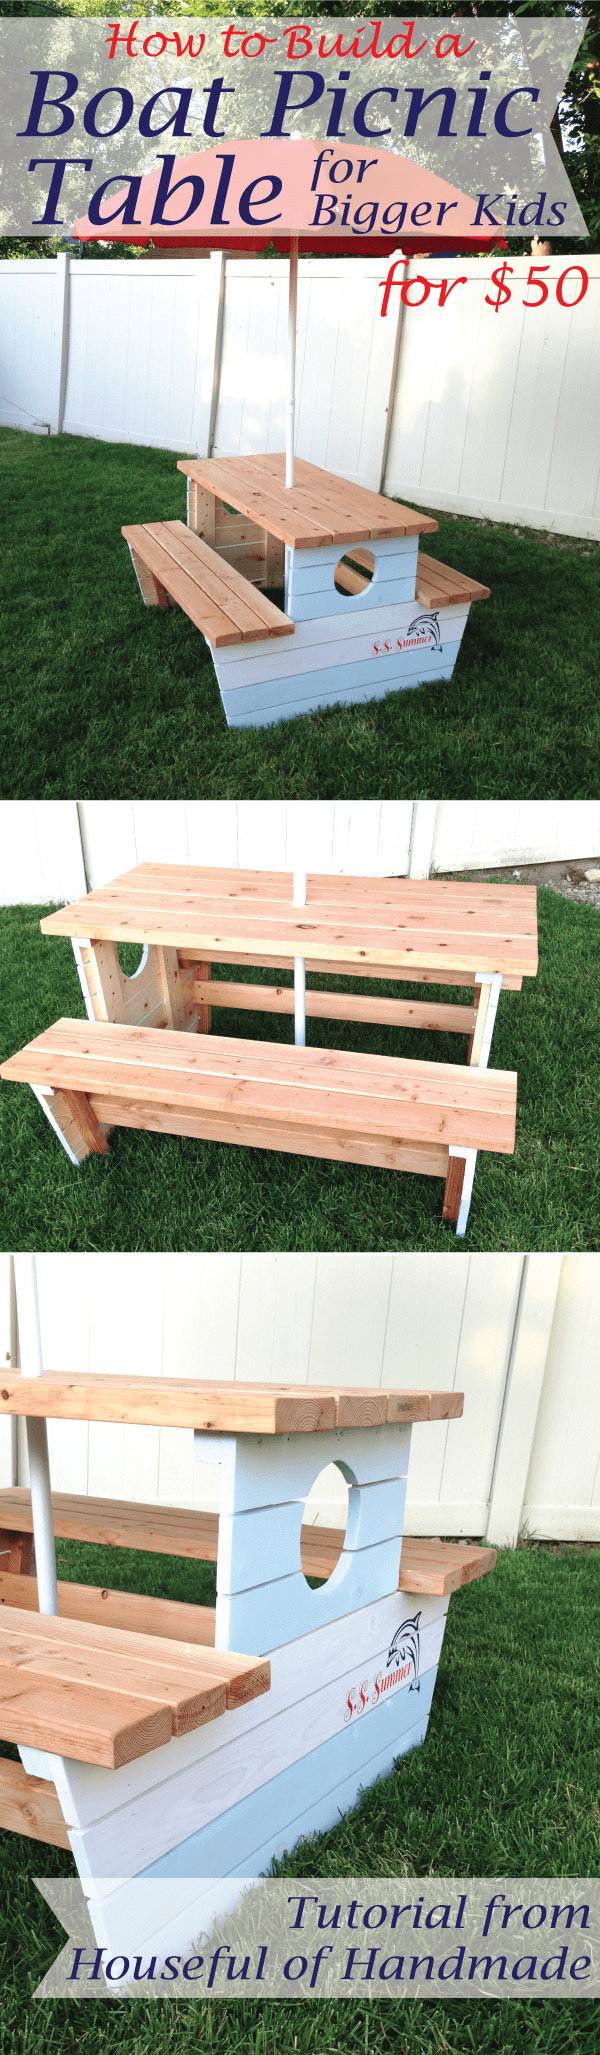 how to build a nautical picnic table for bigger kids a houseful of handmade. Black Bedroom Furniture Sets. Home Design Ideas